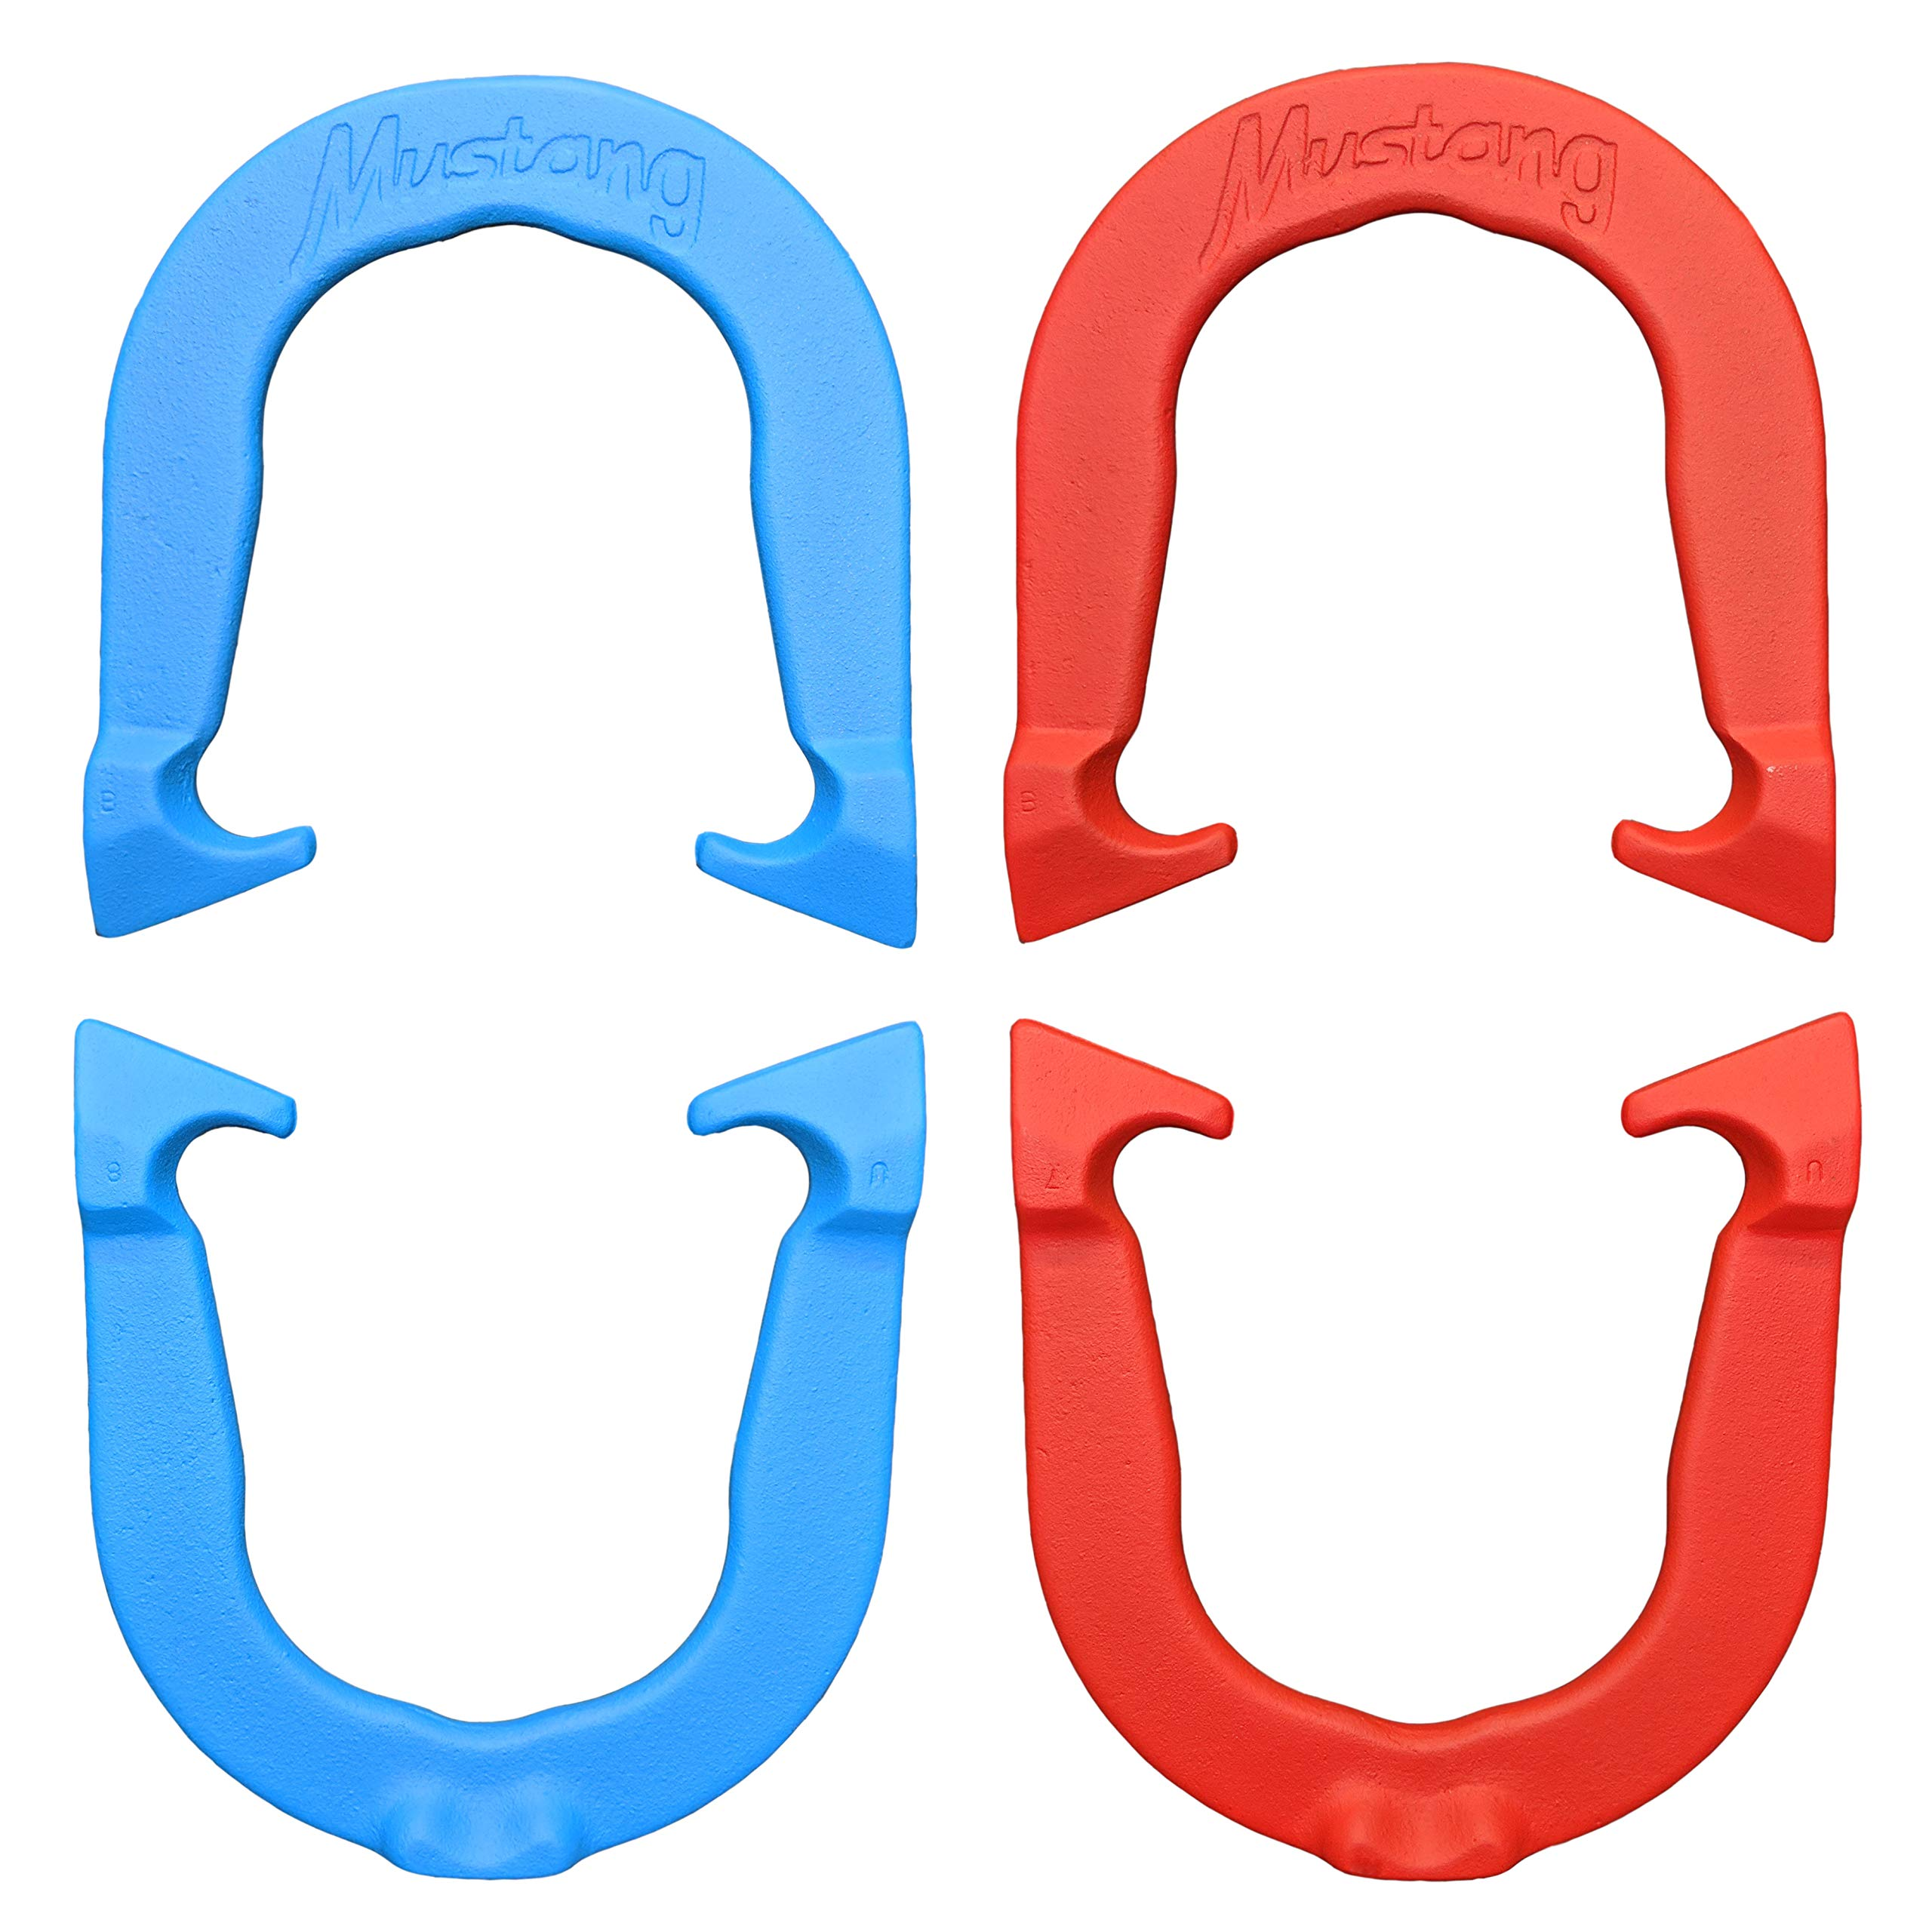 Mustang Professional Pitching Horseshoes Set- Made in USA (Red & Blue- Two Pair Set (4 Shoes)) by Thoroughbred Horseshoes